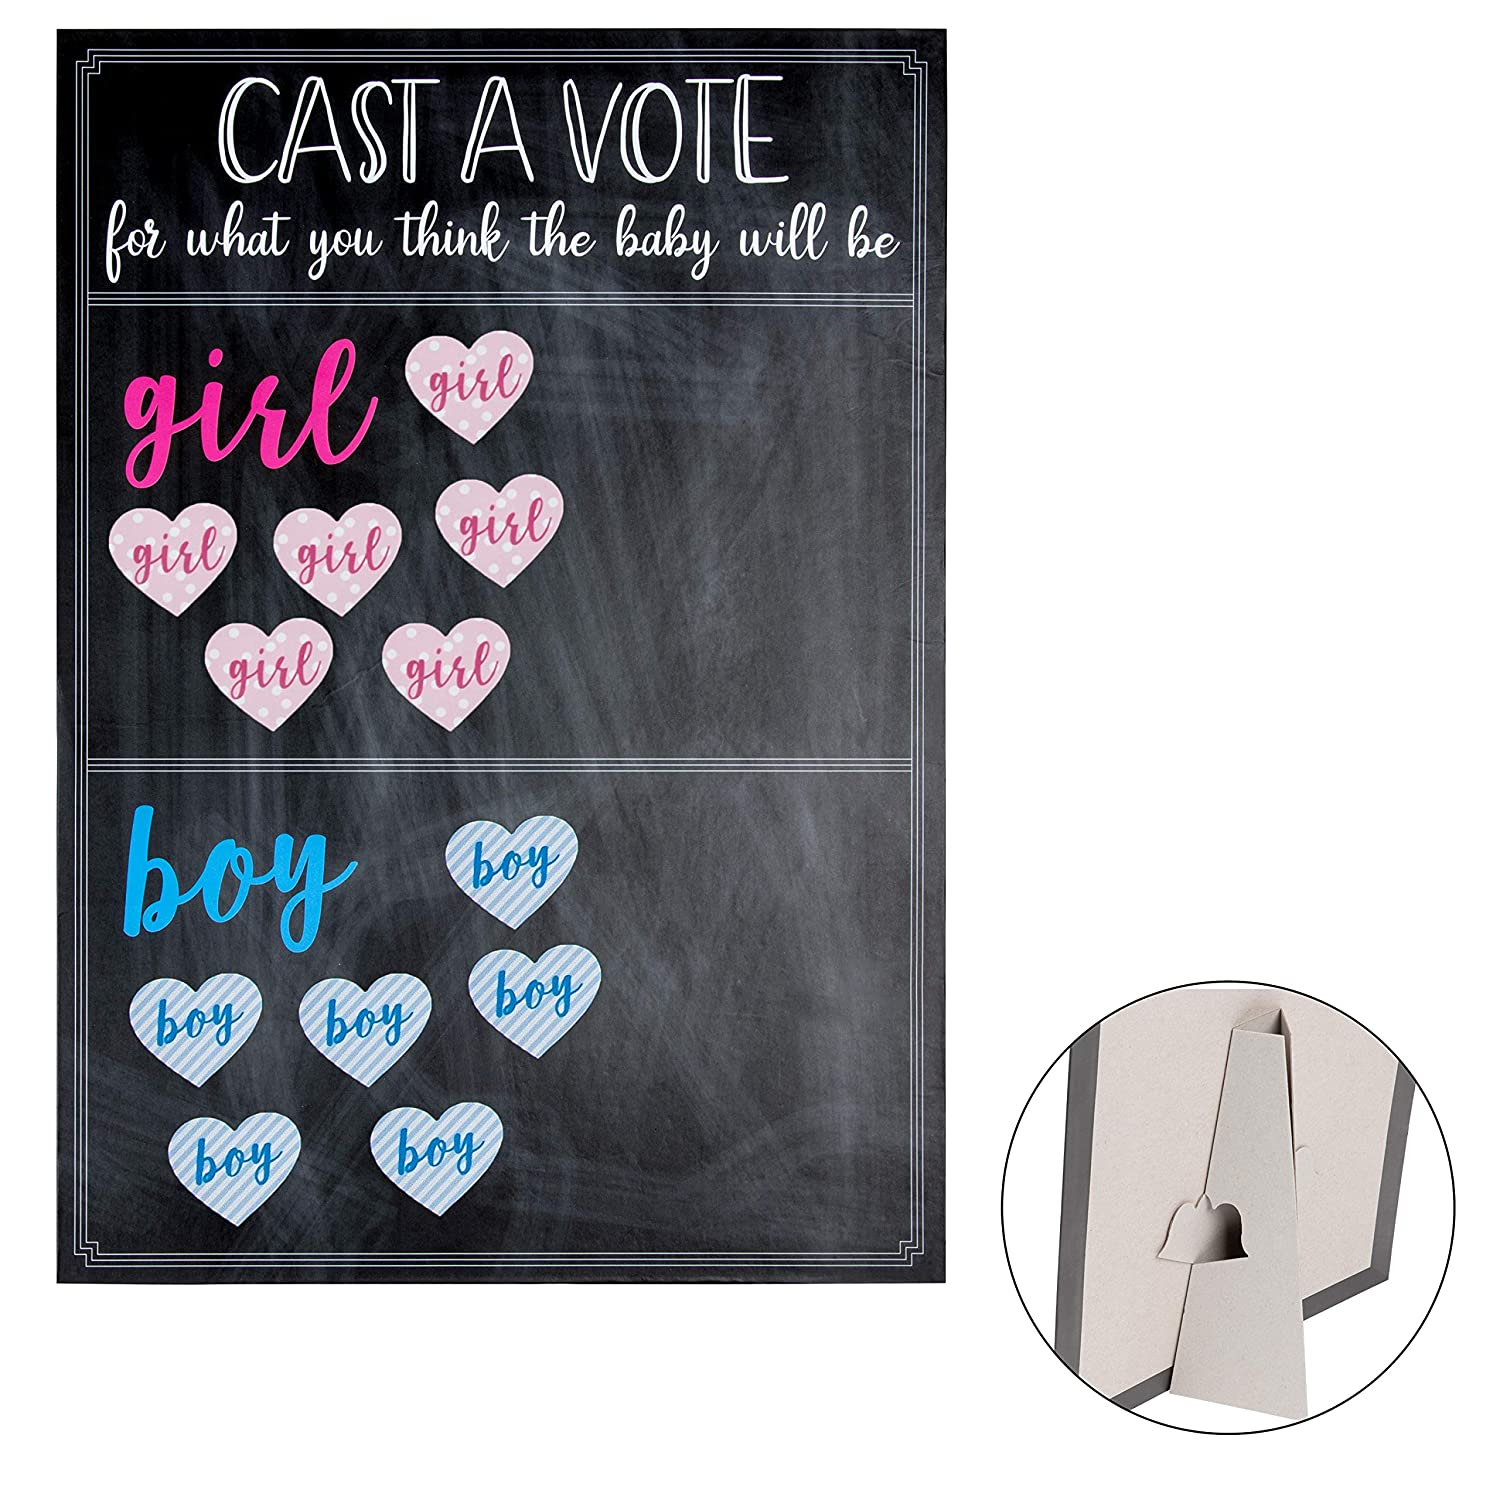 Juvale Gender Reveal Board - Cast A Vote Voting Board with Stand, Includes 60 Girl and 60 Boy Stickers, Gender Reveal Party Supplies, Chalkboard Design, Black, 12 x 17 Inches